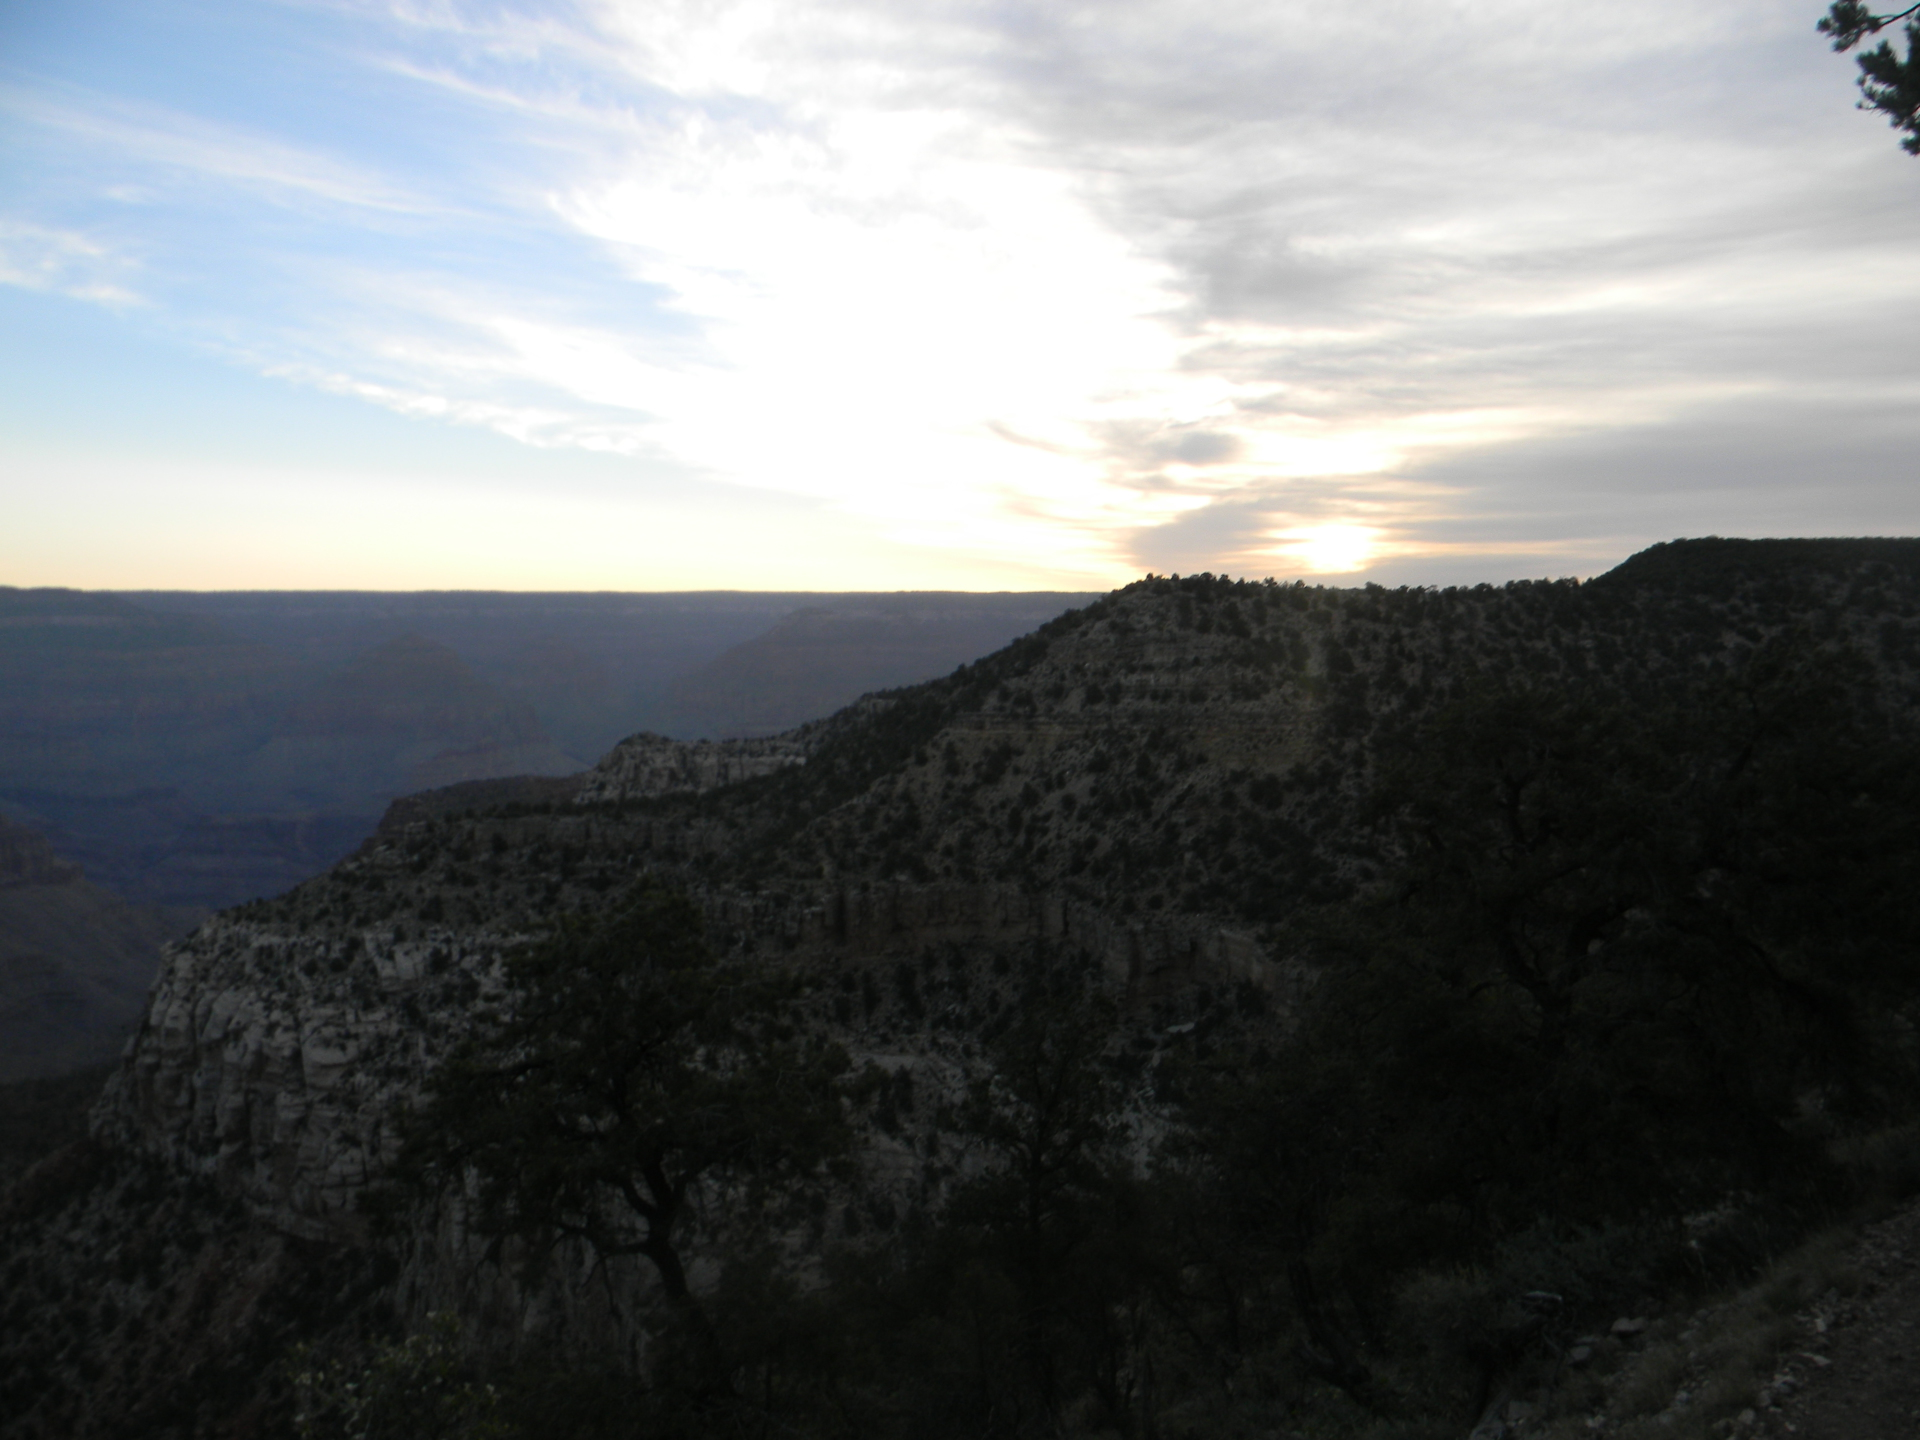 Sunrise on the South Rim, Grand Canyon National Park